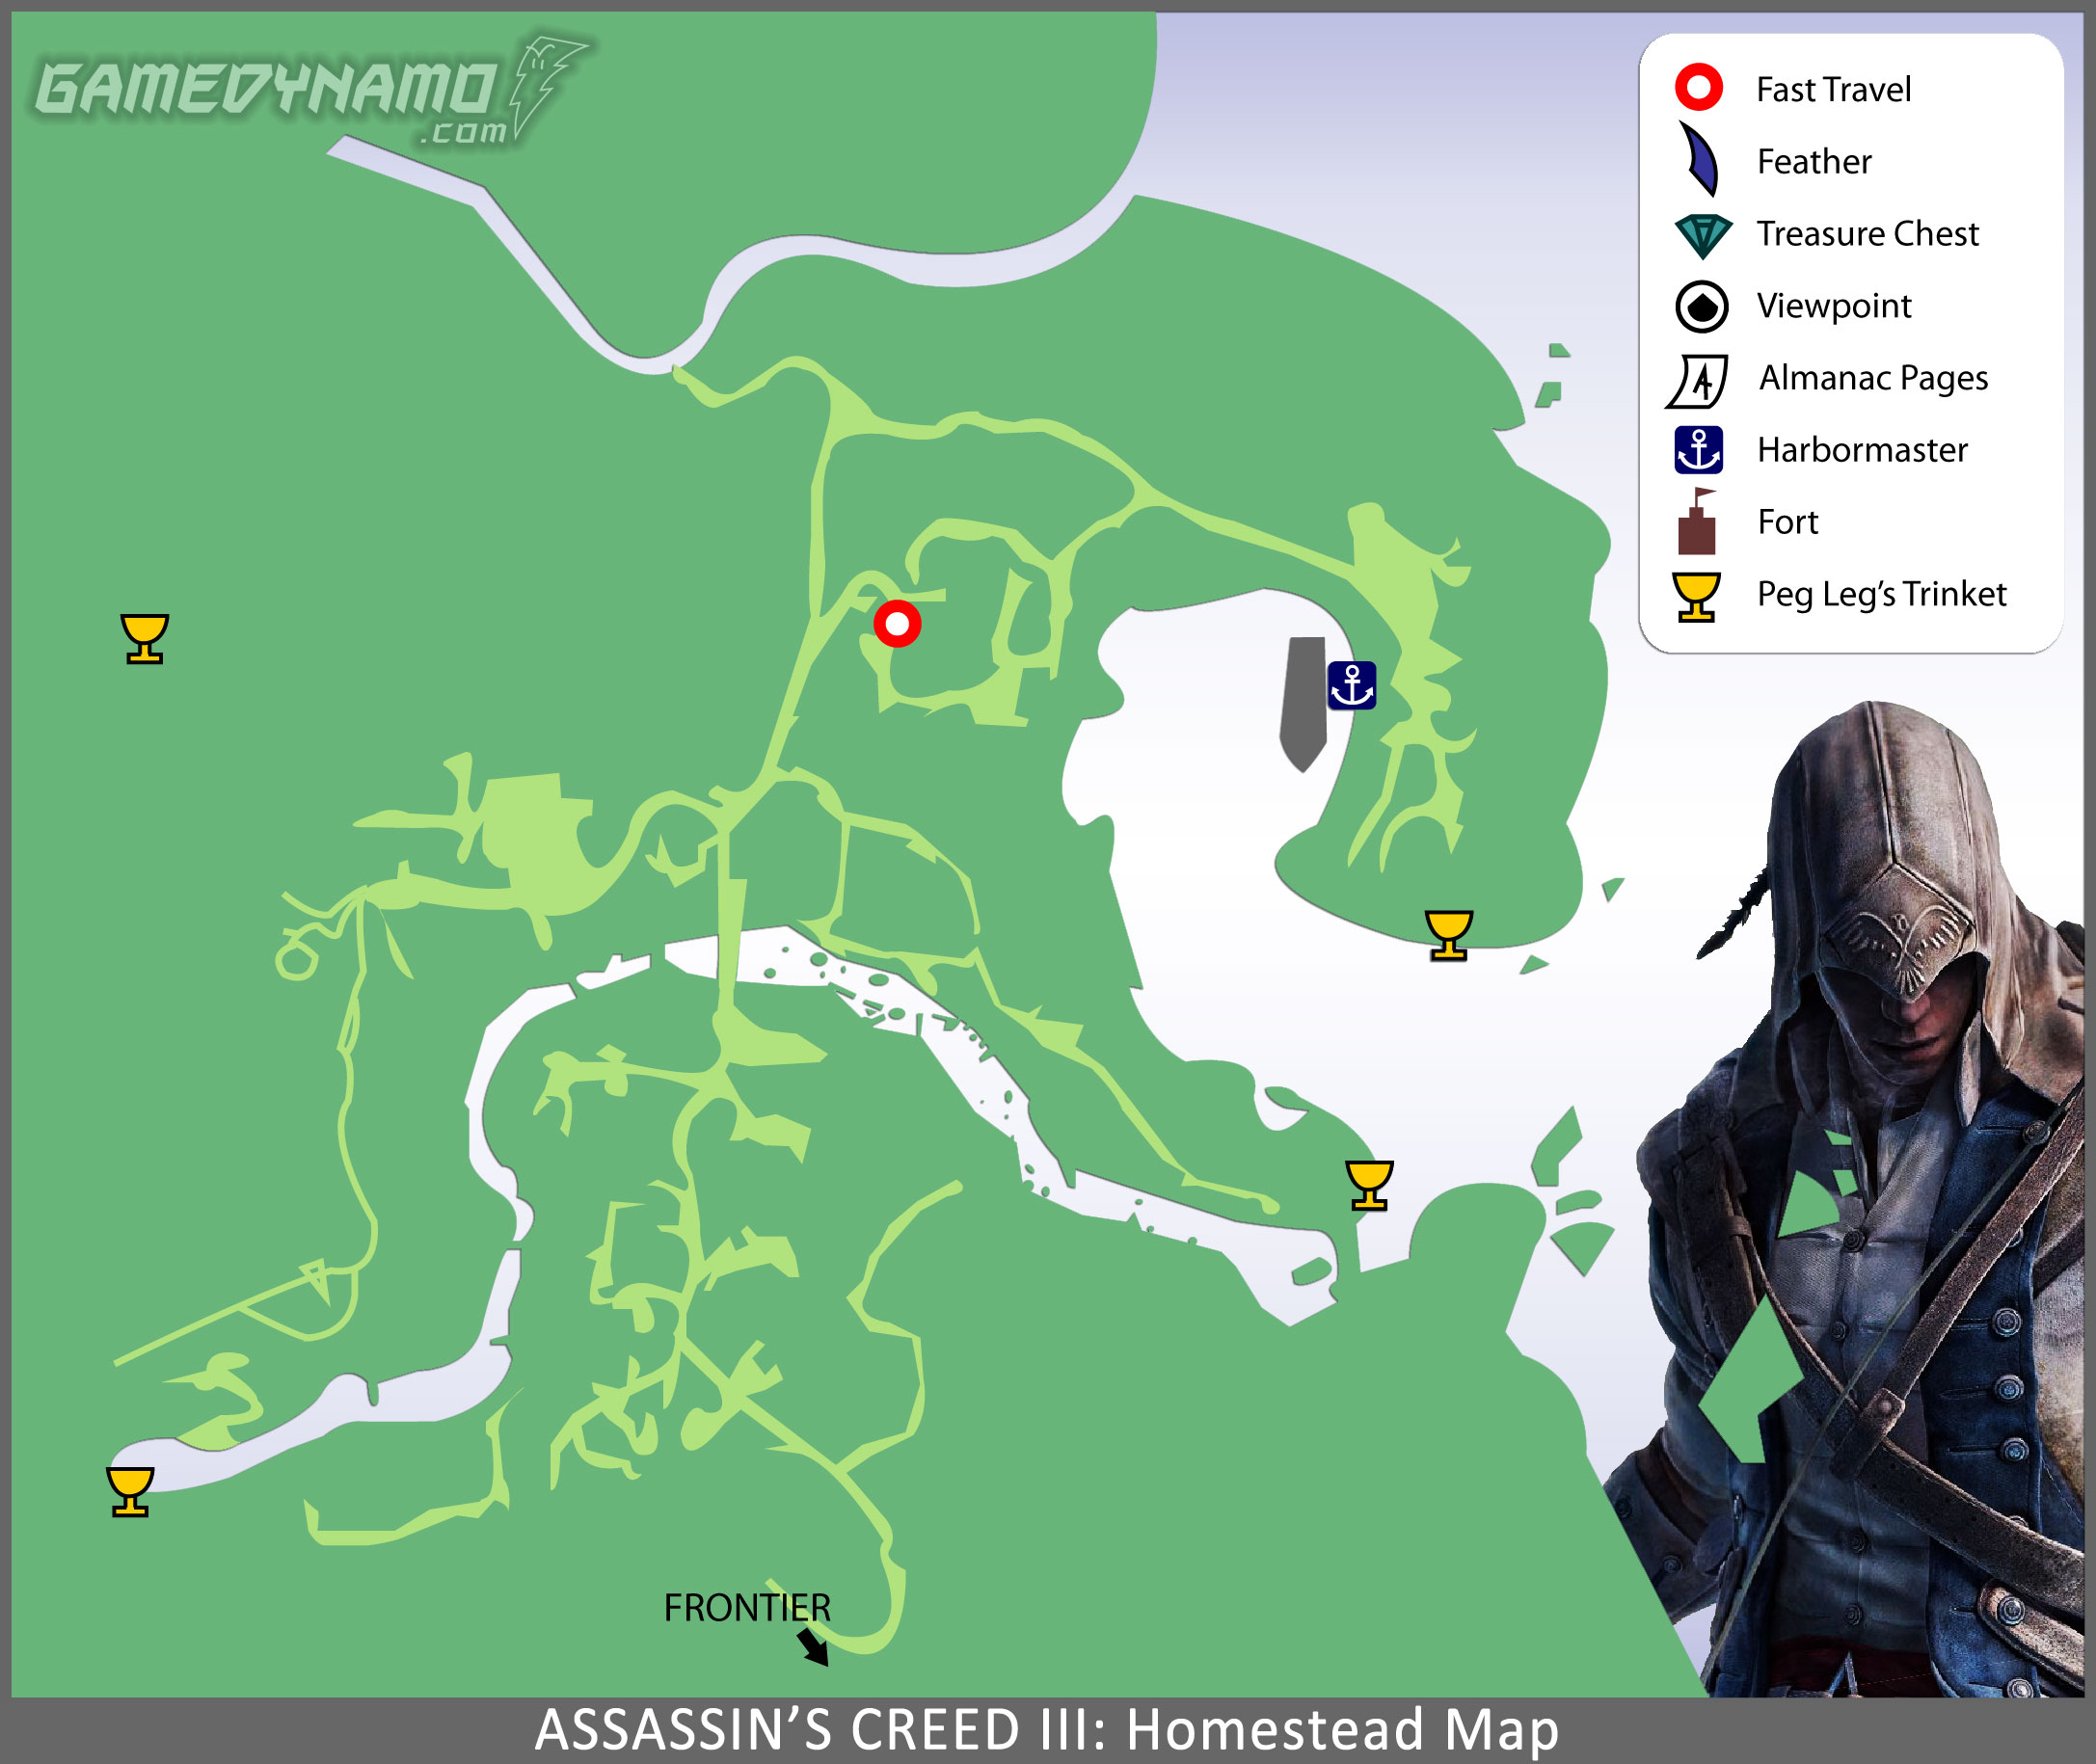 Assassin\\\\\\\\\\\\\\\\\\\\\\\\\\\\\\\'s Creed 3 Map Assassin's Creed III Maps   Feathers, Viewpoints, Fast Travel  Assassin\\\\\\\\\\\\\\\\\\\\\\\\\\\\\\\'s Creed 3 Map